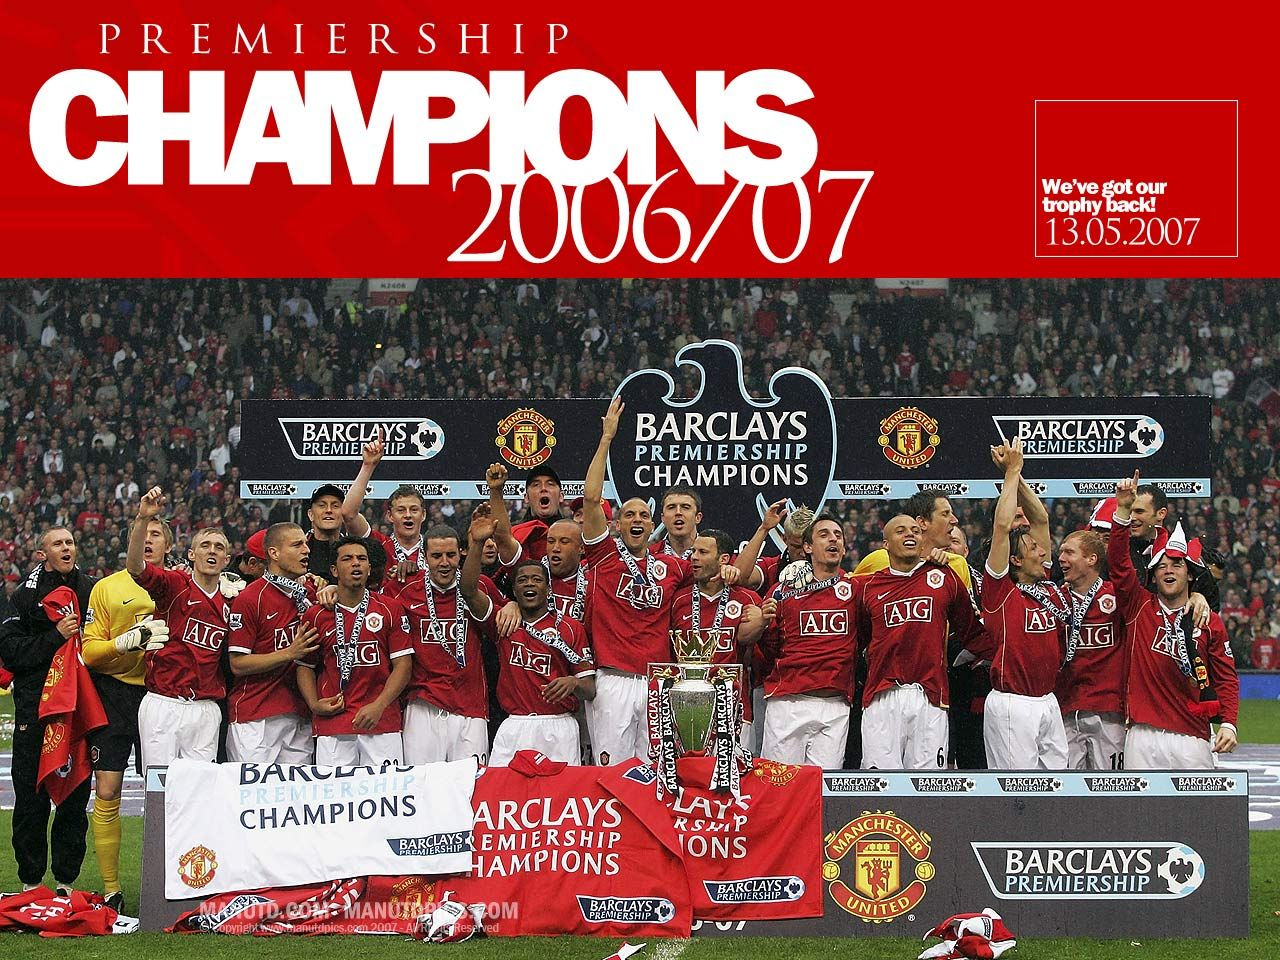 Champions manchester united wallpaper for 07 08 championship table